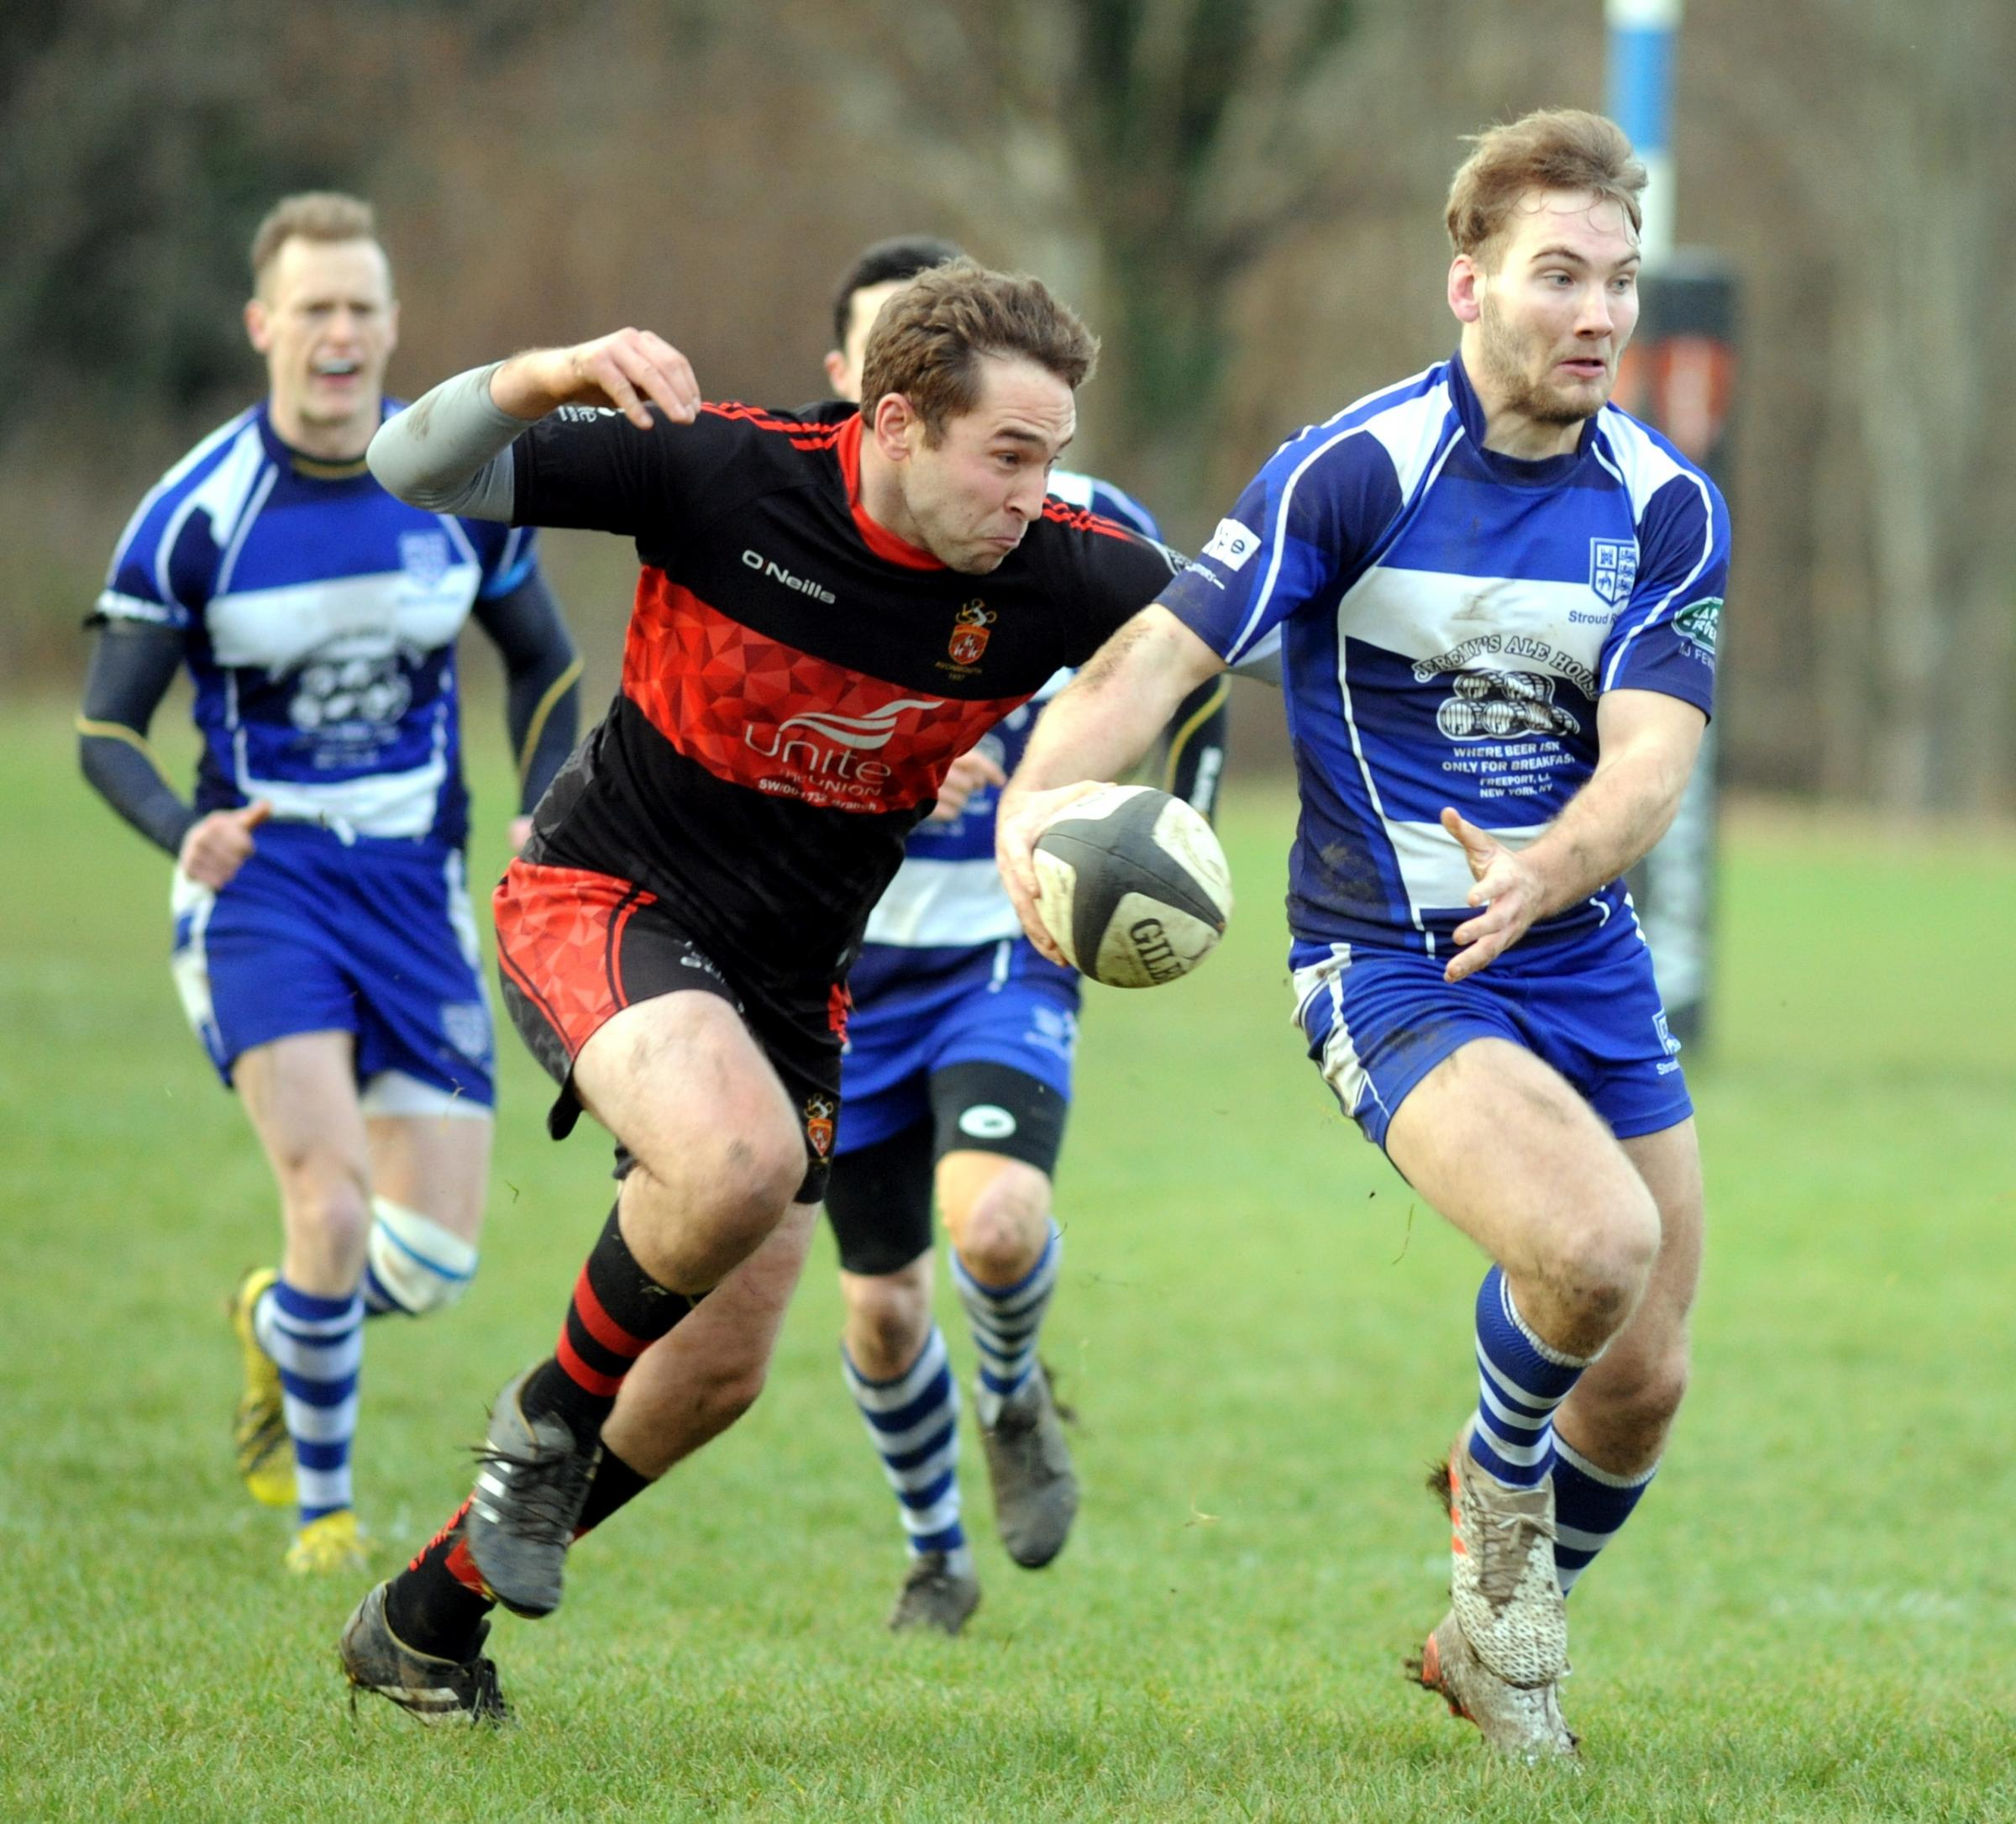 <b>RUGBY</b>: Match abandoned after second-half flare-up | Stroud <b>News</b> ...